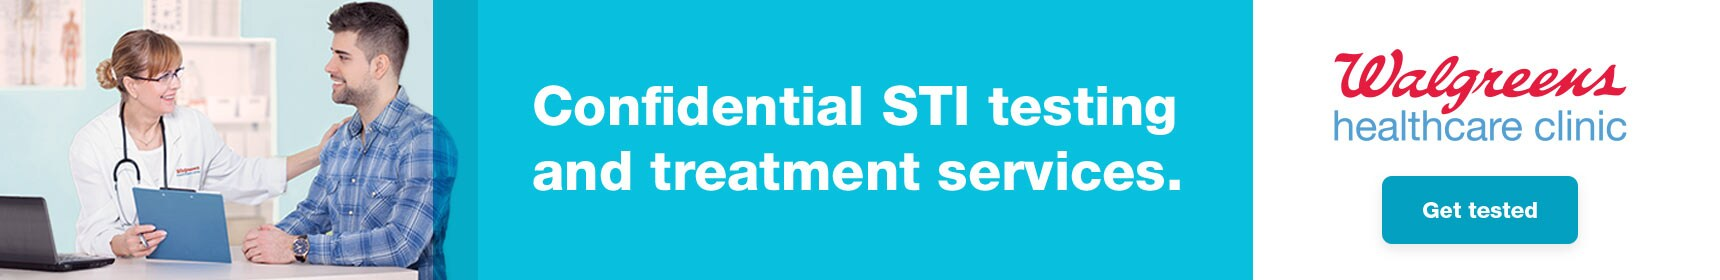 Confidential STI testing and treatment services. Walgreens healthcare clinic. Get tested.